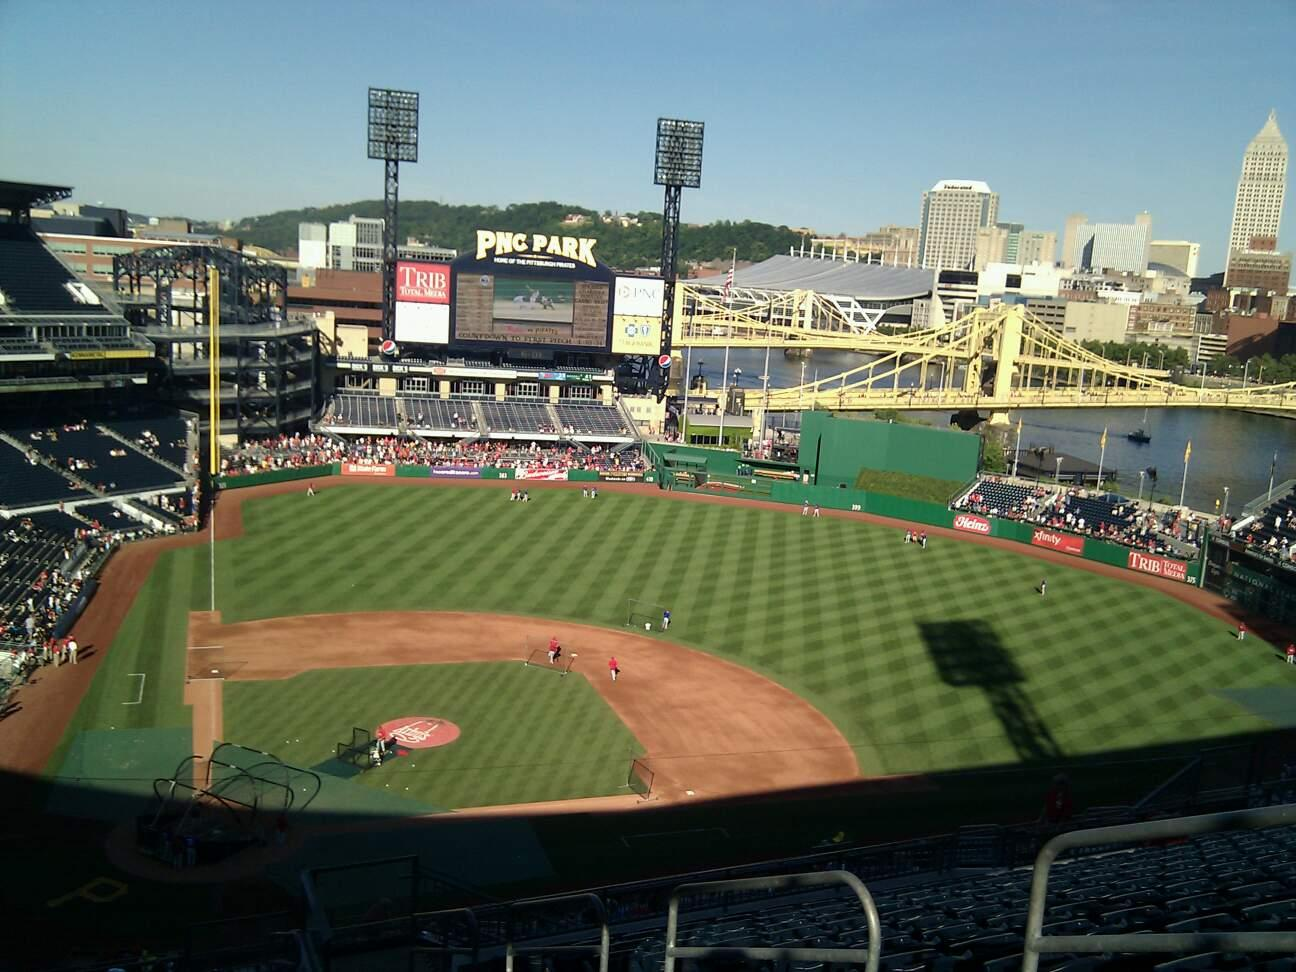 PNC Park Section 312 Row w Seat 5